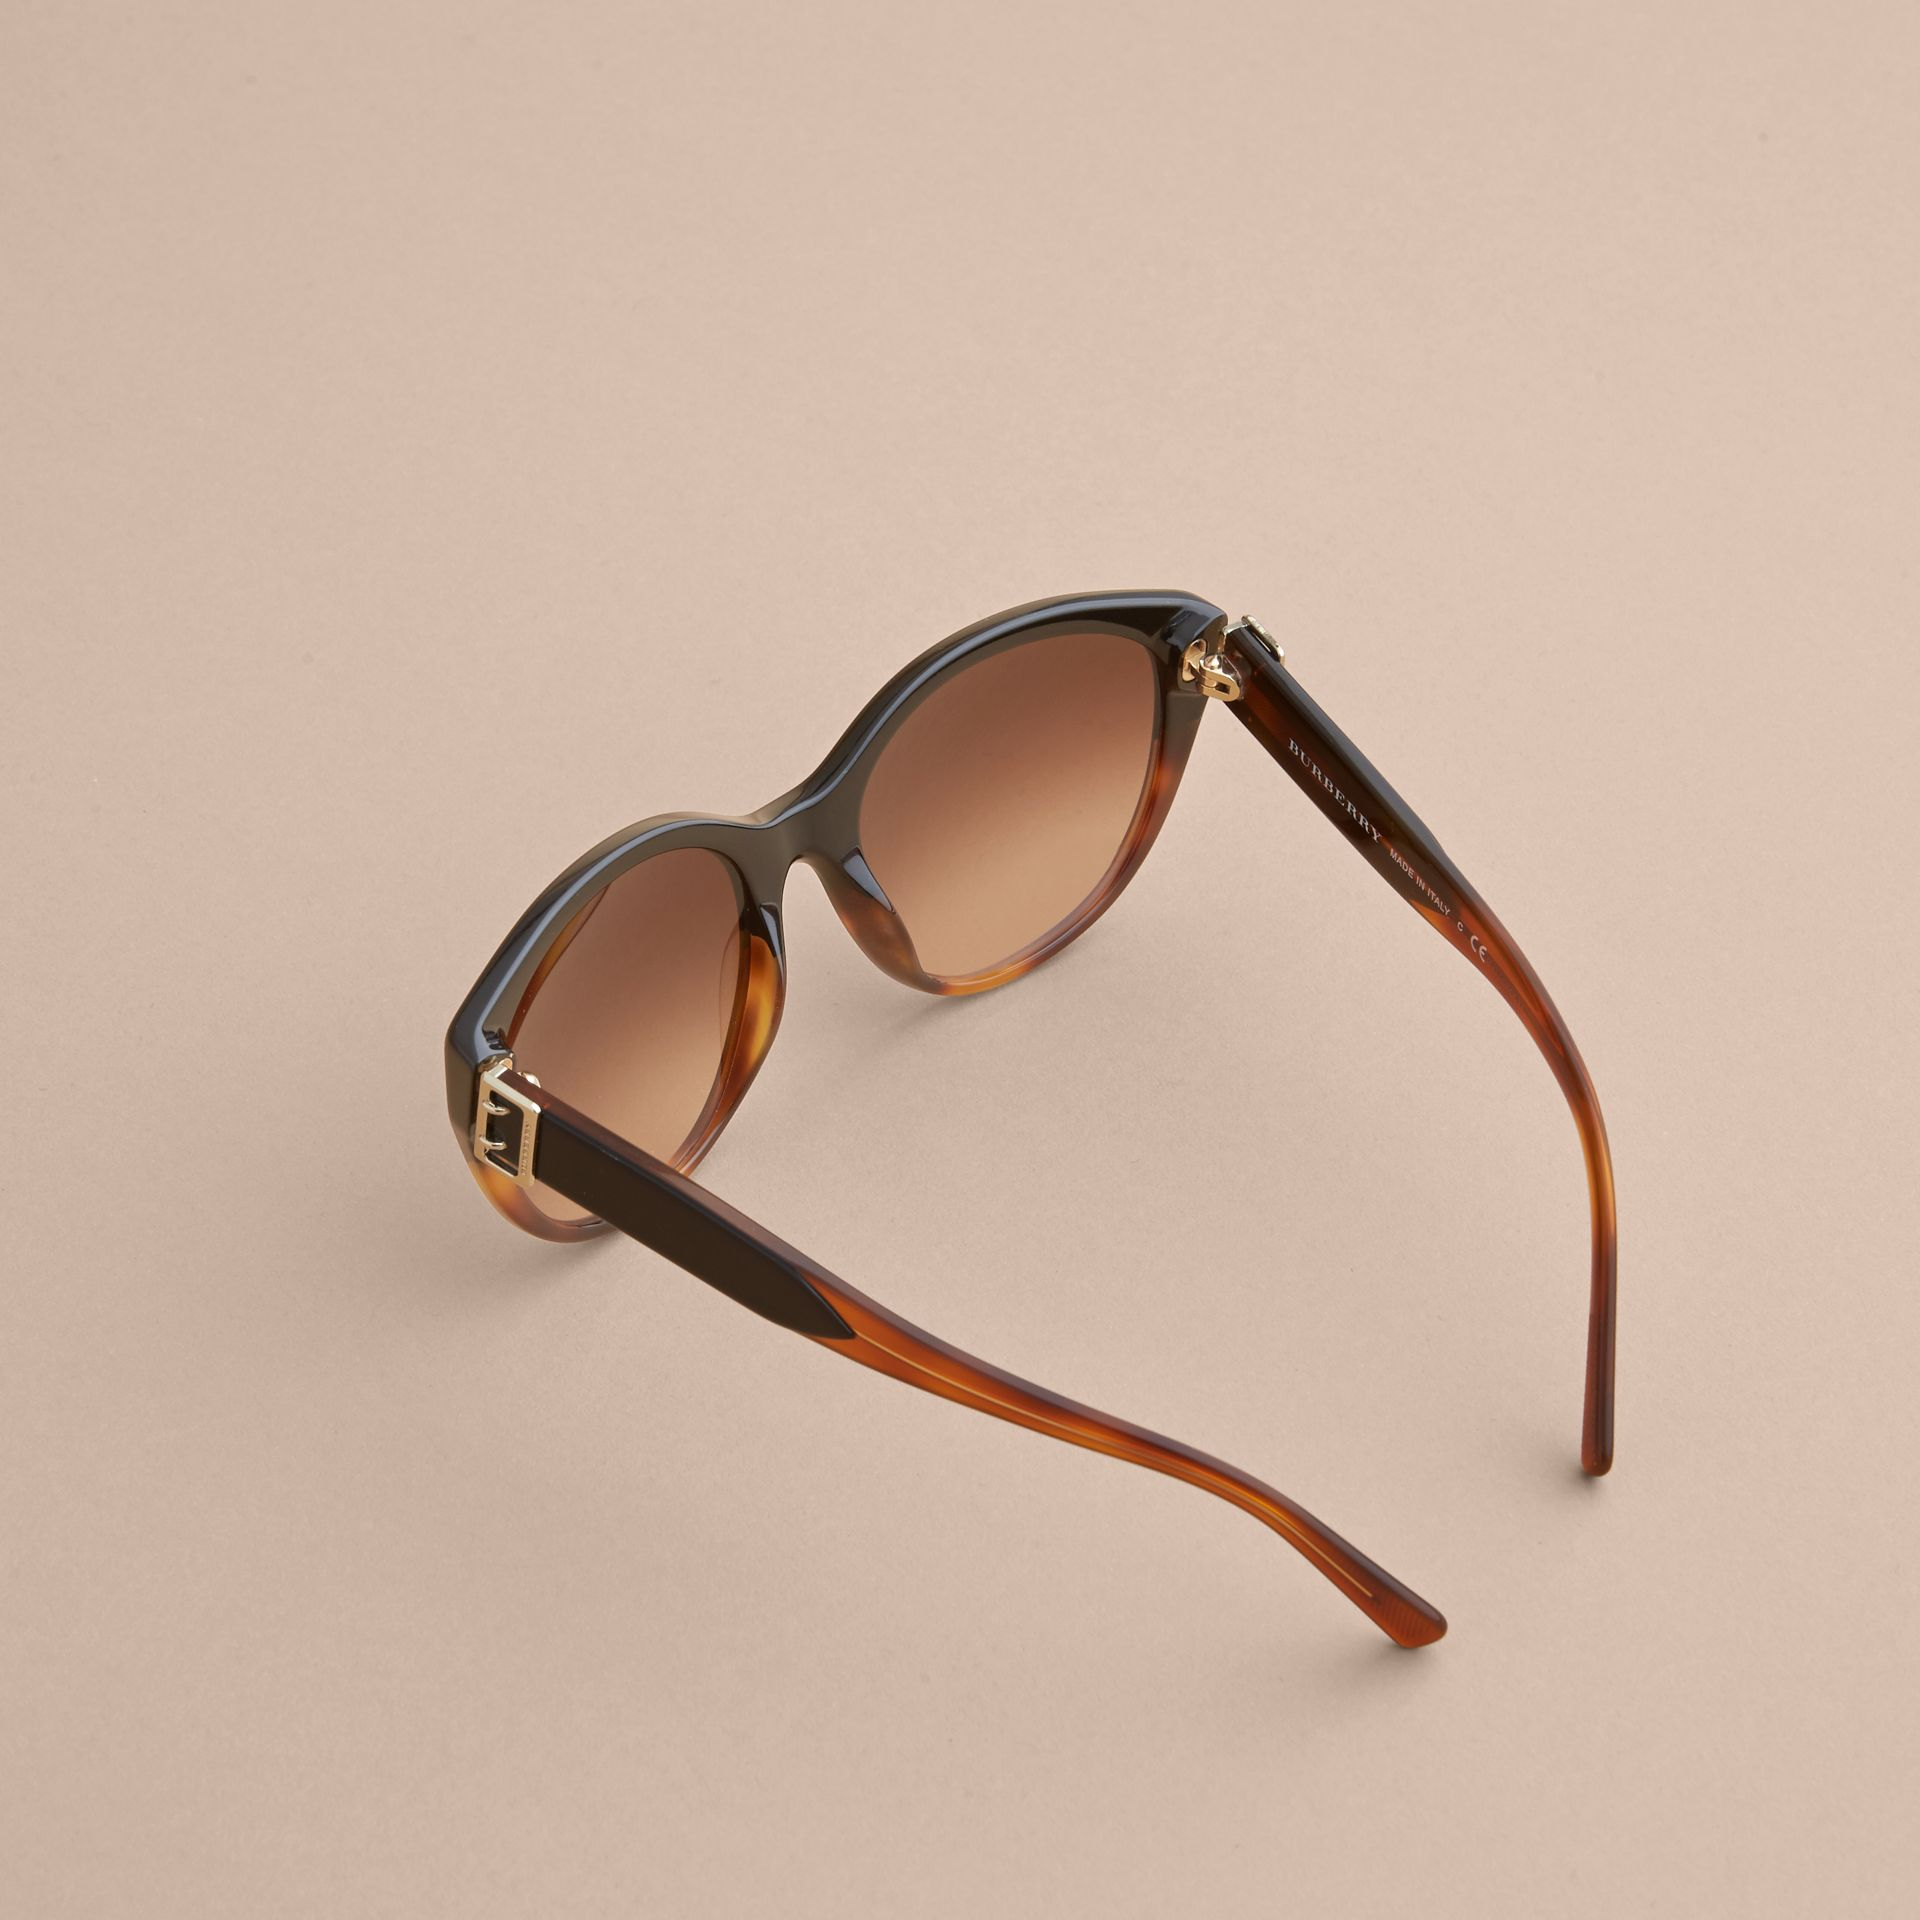 Buckle Detail Round Frame Sunglasses in Tortoise Amber - Women | Burberry - gallery image 4